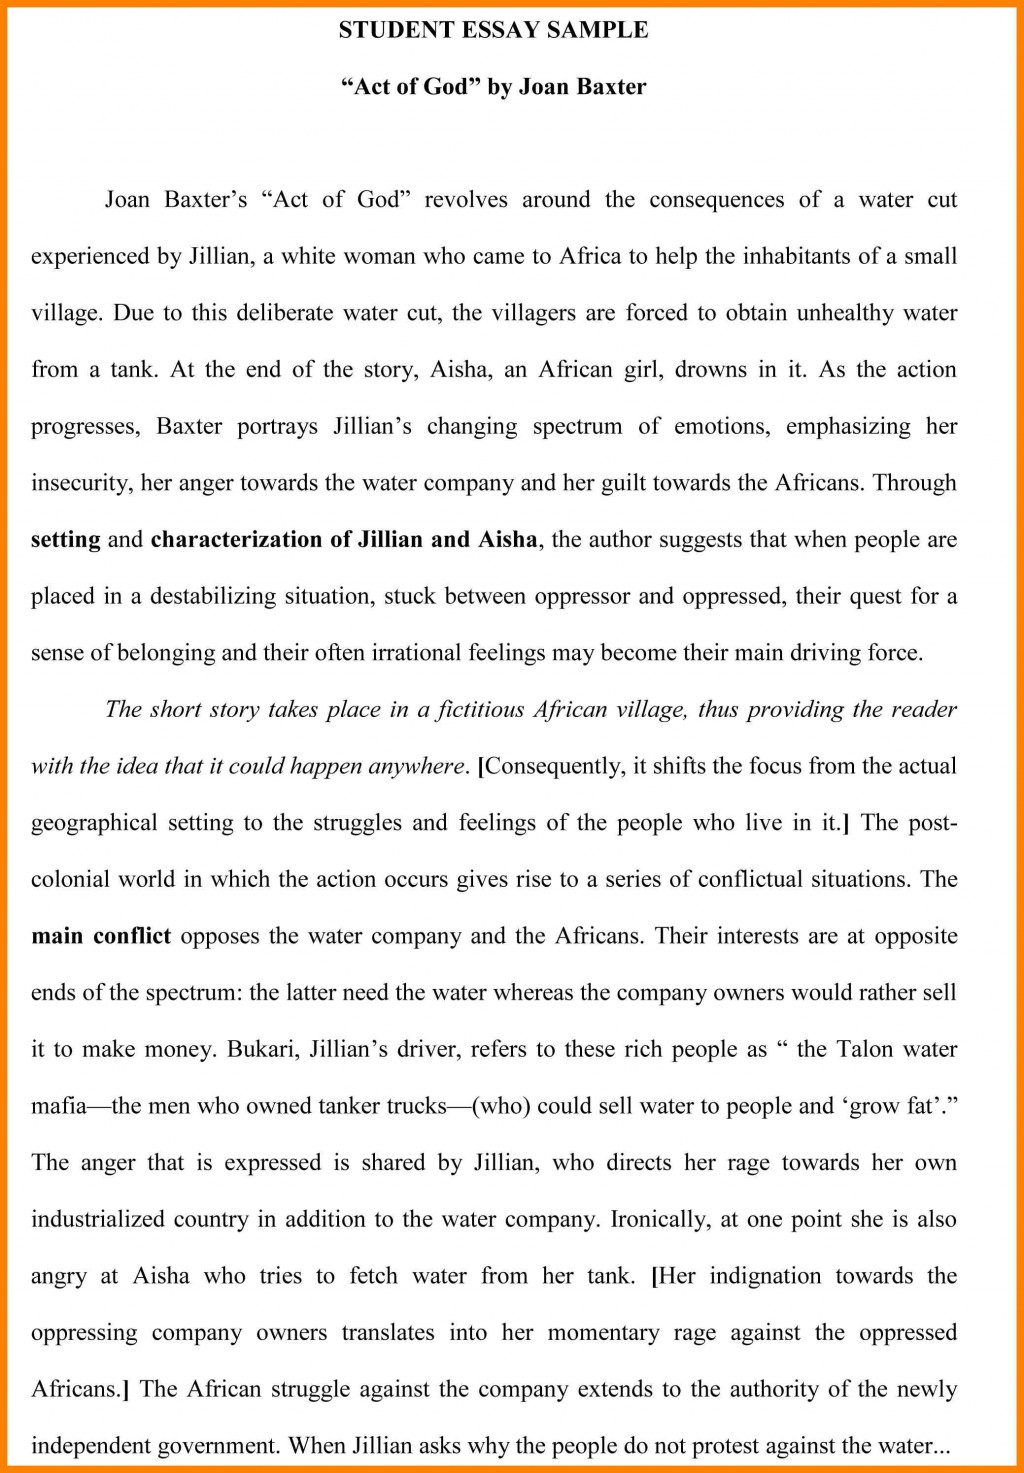 008 Examples Of Process Essays Pdf How To Write Good Student Better Download Descriptive Great Law Steve Foster Lauren Starkey Essay Example Stirring Montaigne Deutsch English Penguin Large